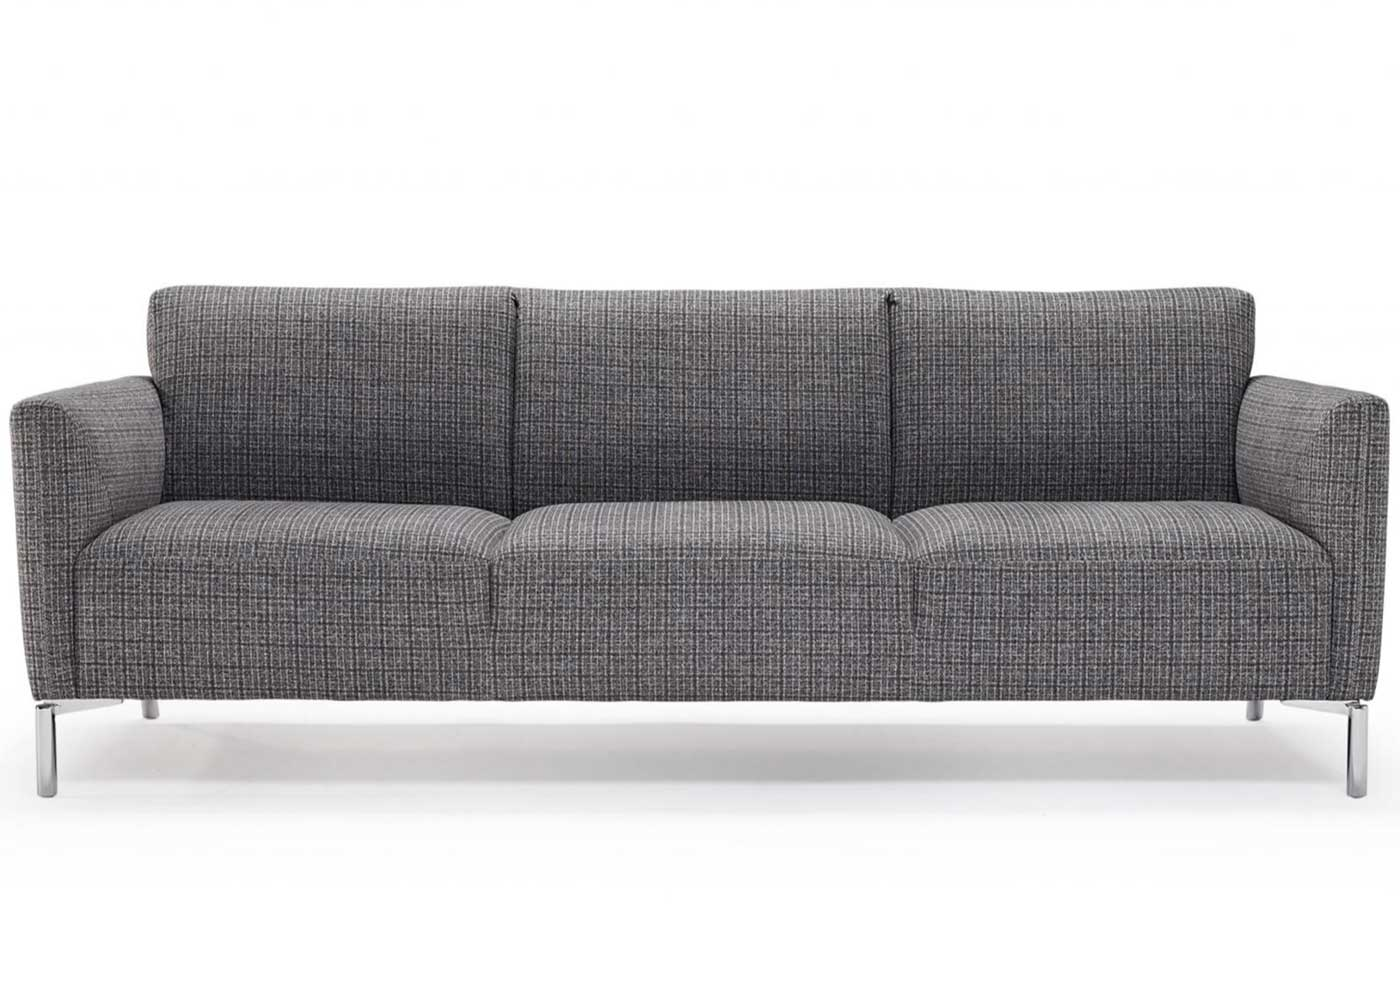 Sofa Uk Clearance Natuzzi Corner Sofa Clearance Review Home Co